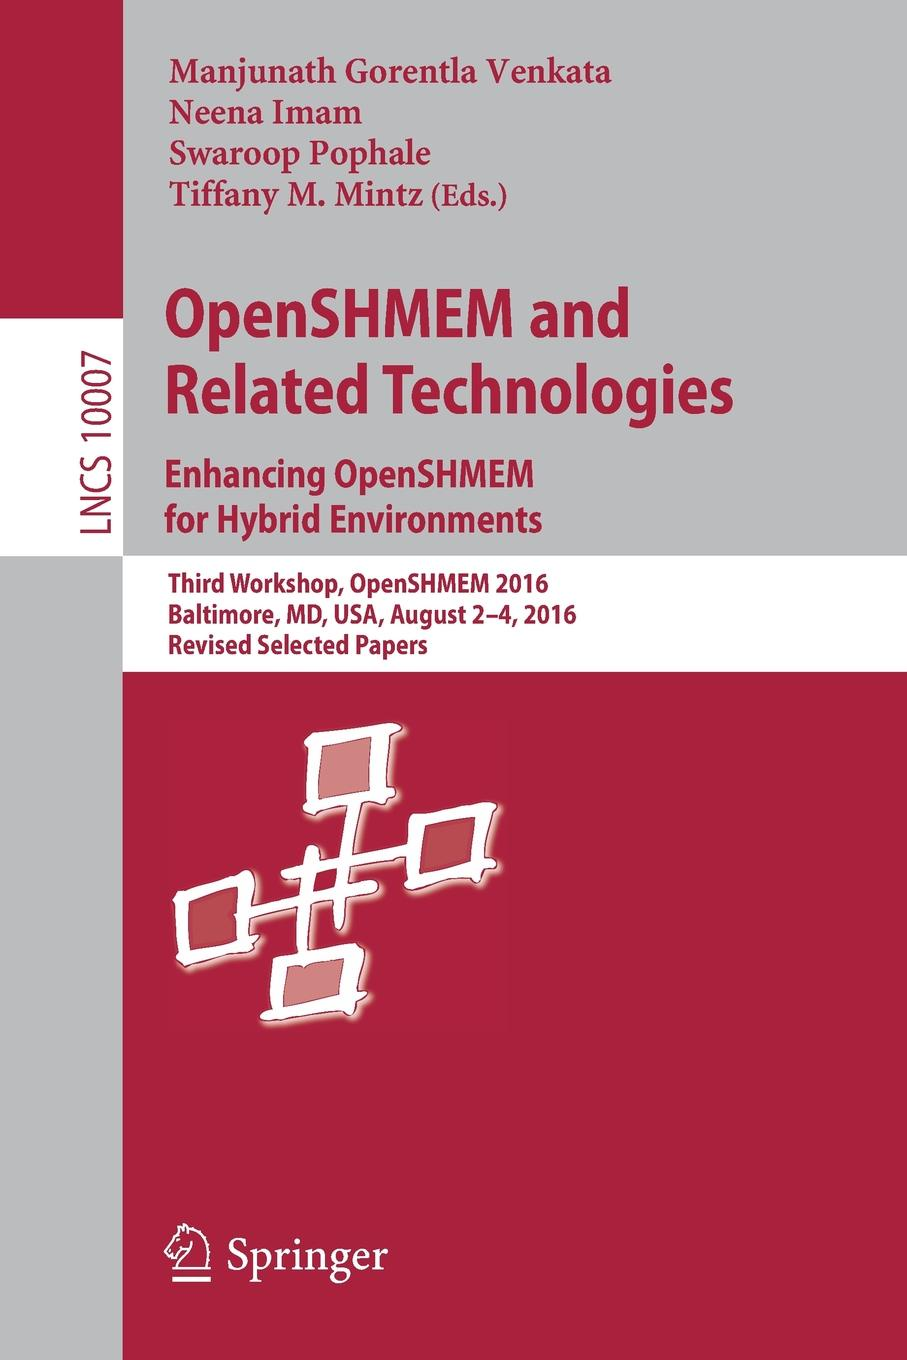 OpenSHMEM and Related Technologies. Enhancing OpenSHMEM for Hybrid Environments. Third Workshop, OpenSHMEM 2016, Baltimore, MD, USA, August 2 - 4, 2016, Revised Selected Papers wu ying acid gas injection and related technologies